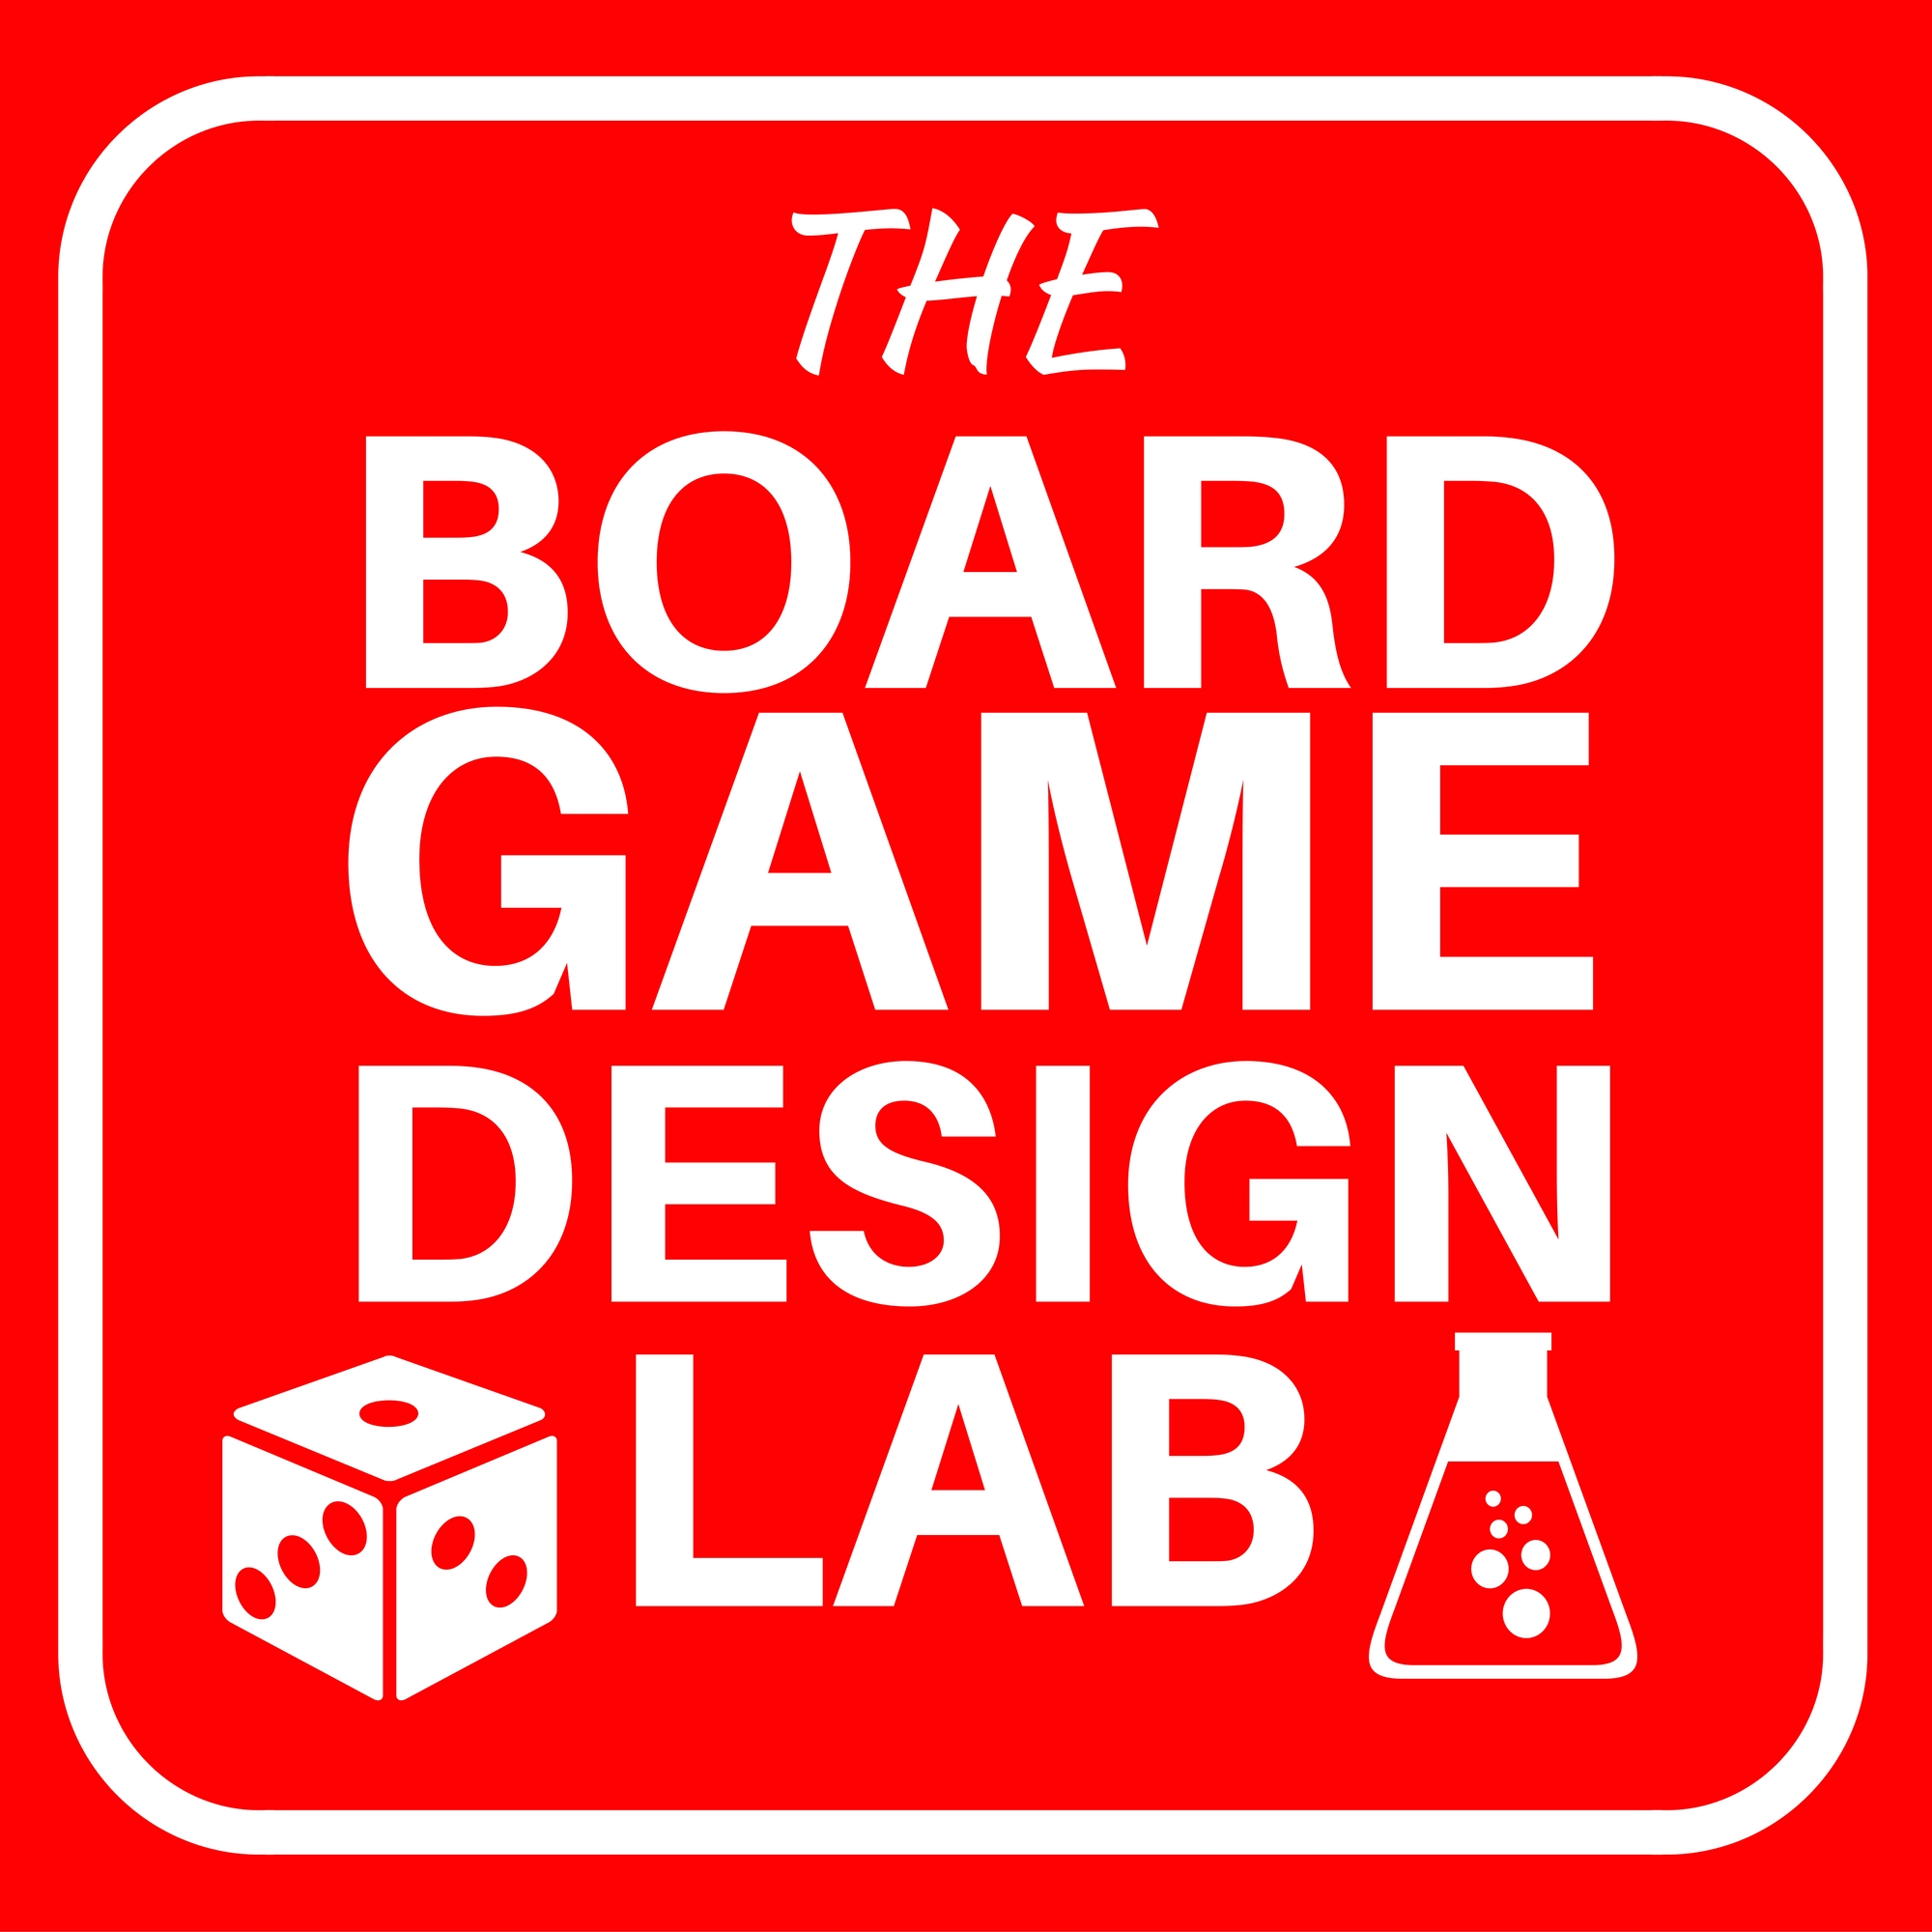 Gabe Barrett of Board Game Design Lab has been a consistent supporter of our design retreats, and his podcast is best-in-class for new designers working to improve their knowledge of game design.